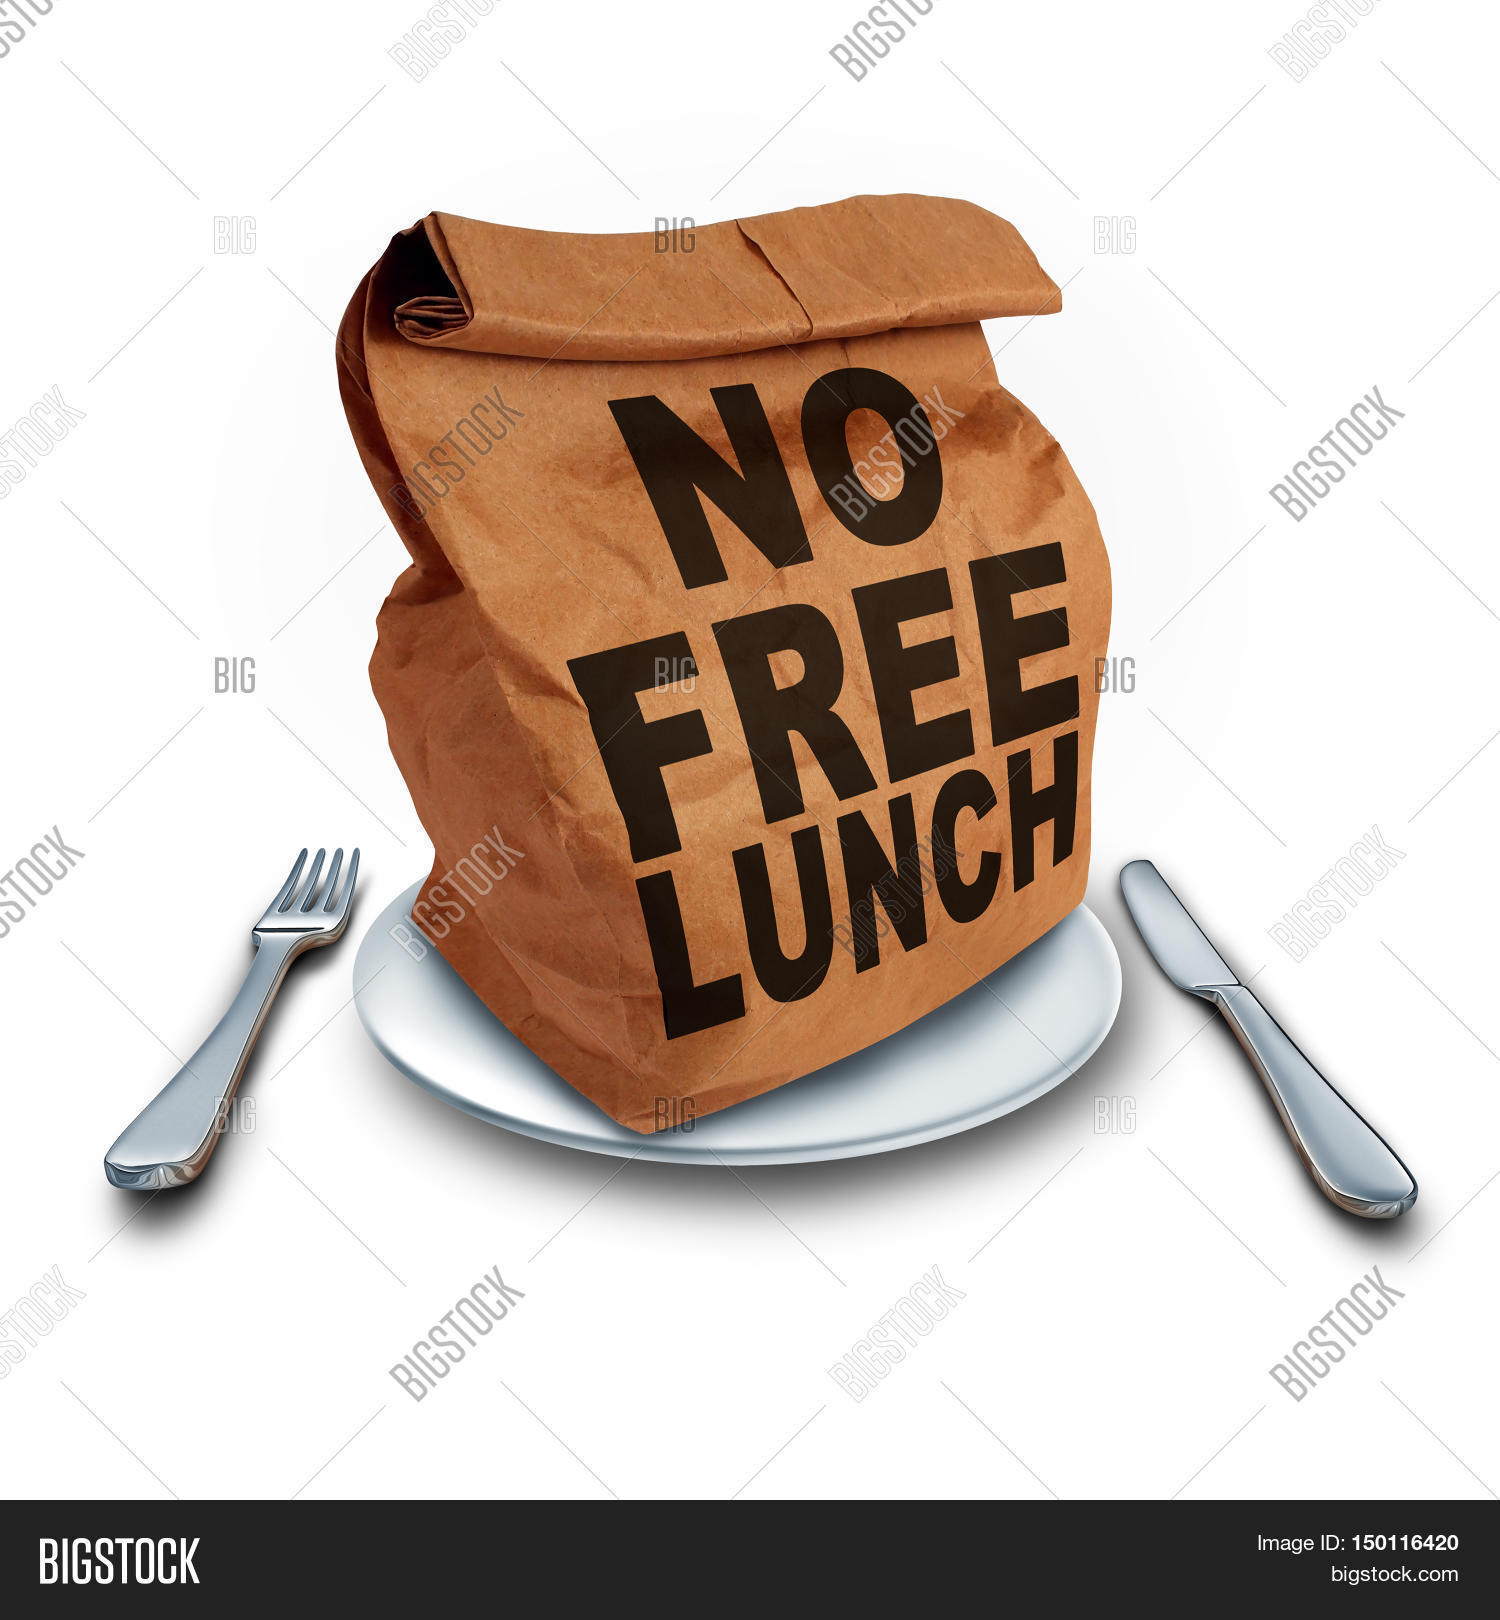 No Free Lunch Business Concept Image Photo Bigstock